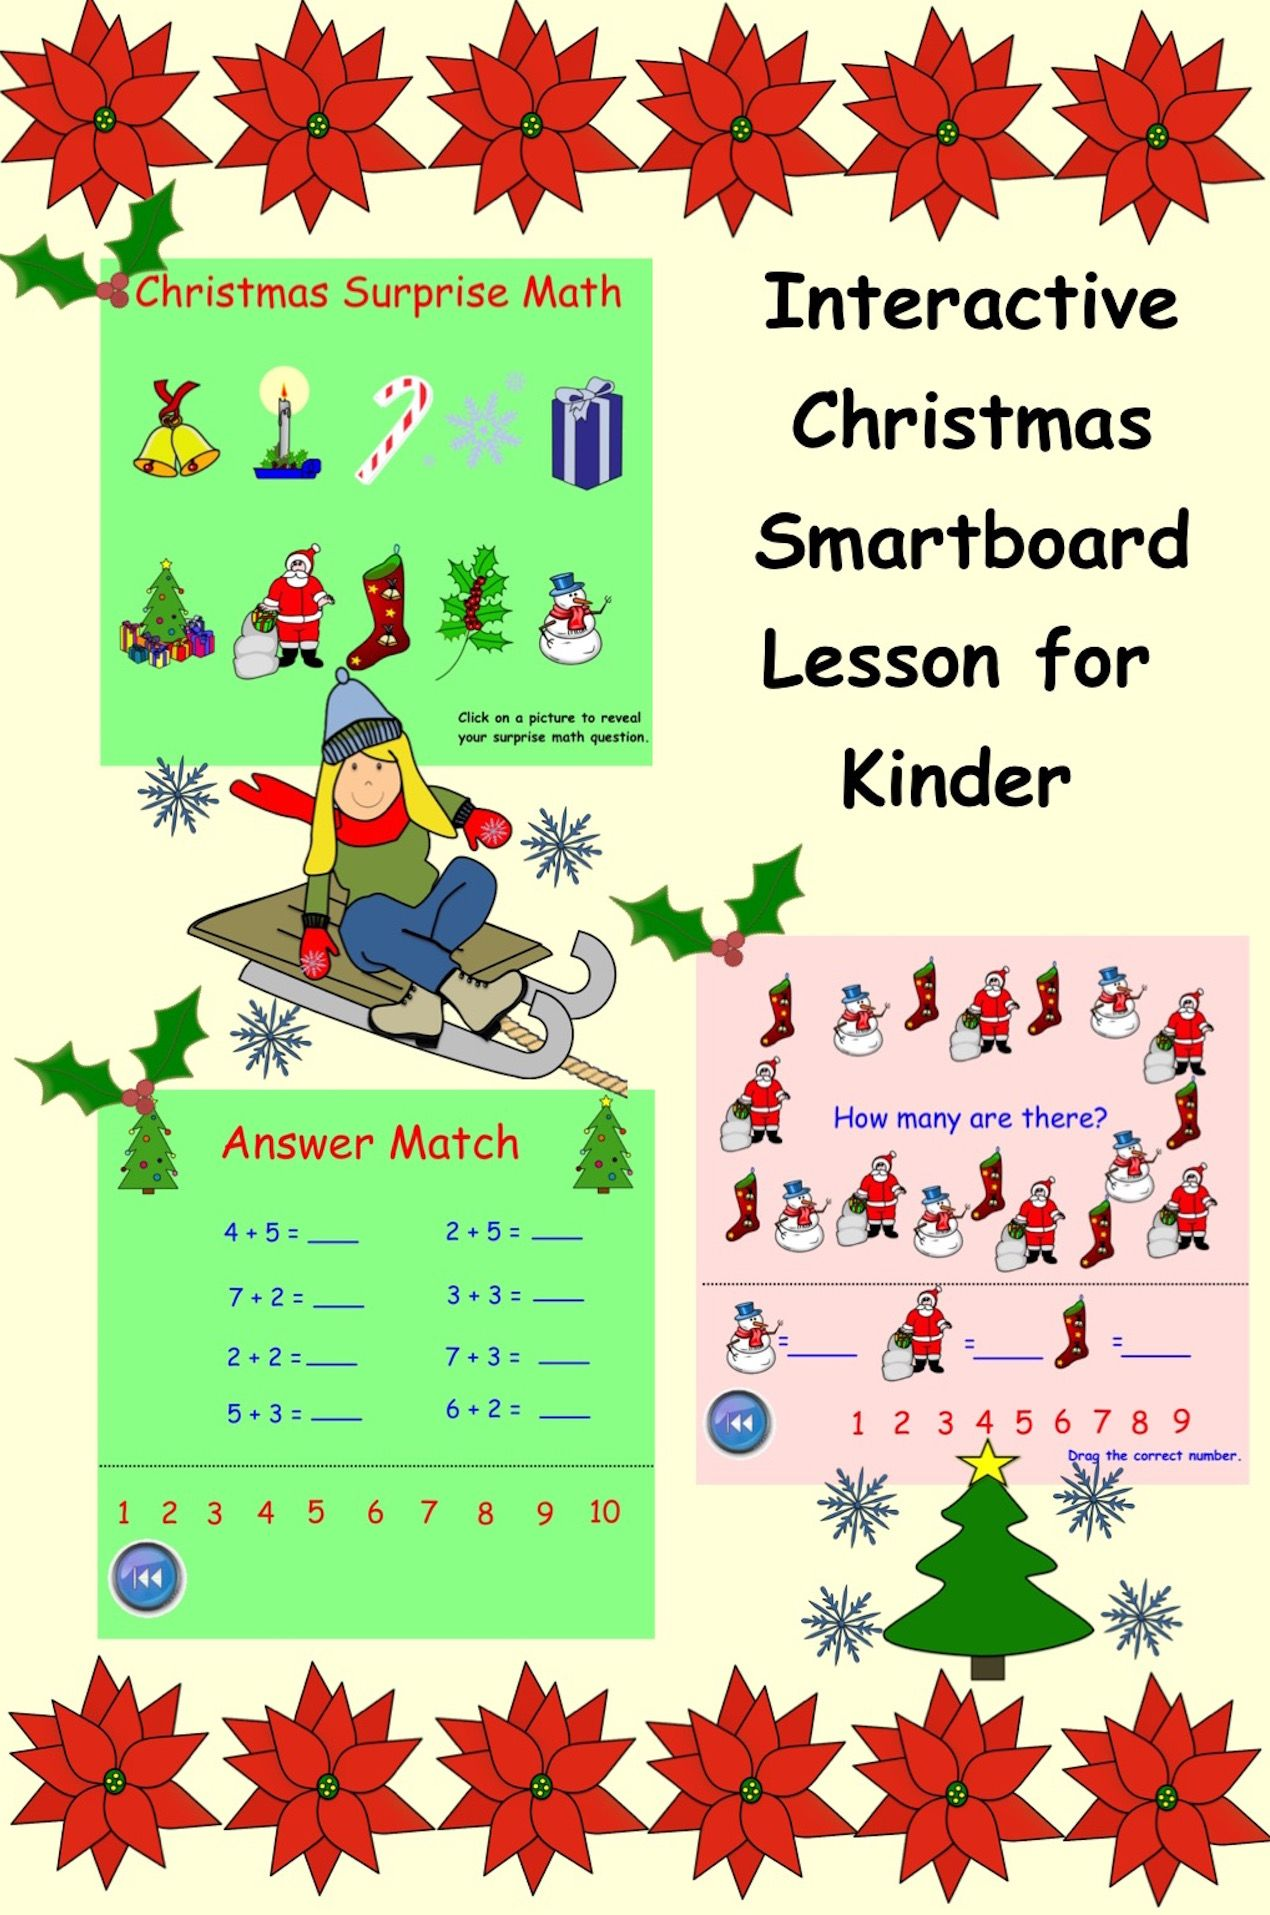 Smartboard Christmas Surprise Math